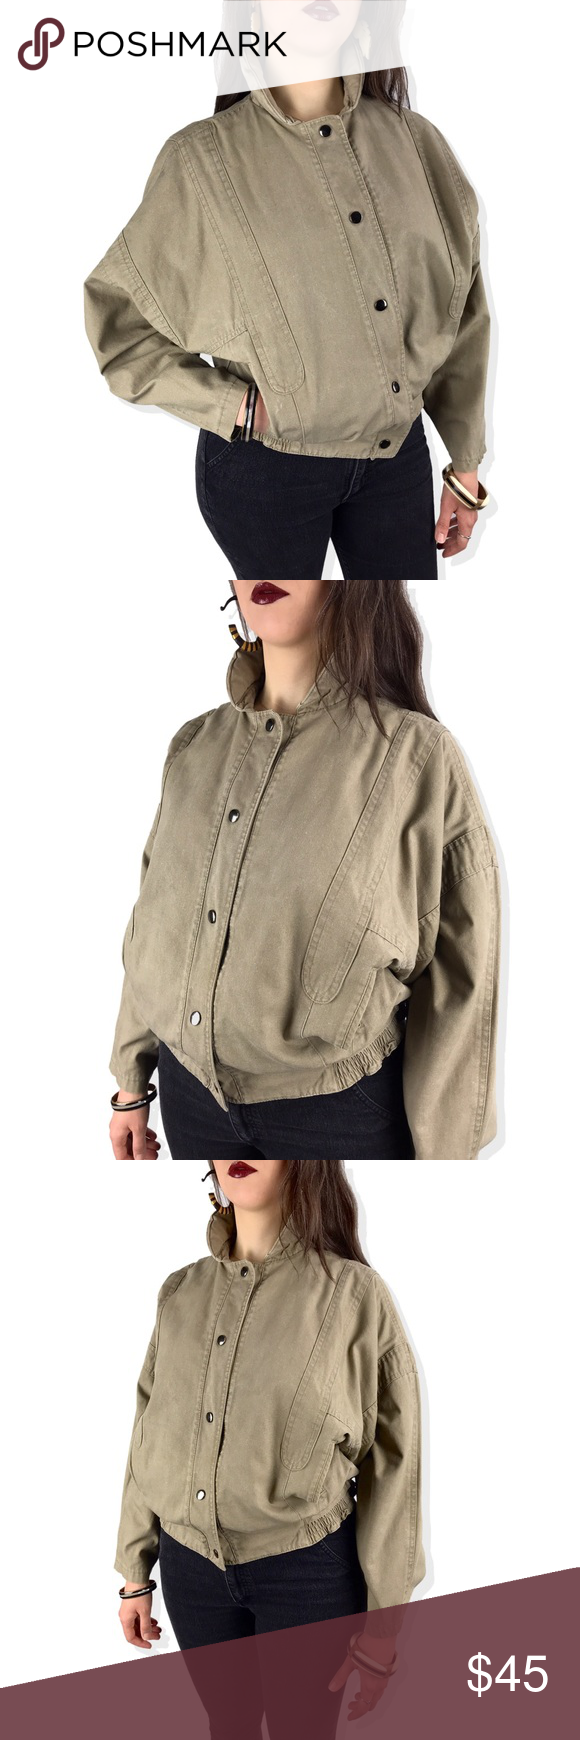 Vtg Khaki Batwing Cropped Denim Jacket Cropped Denim Jacket Cropped Denim Vintage Denim Jacket